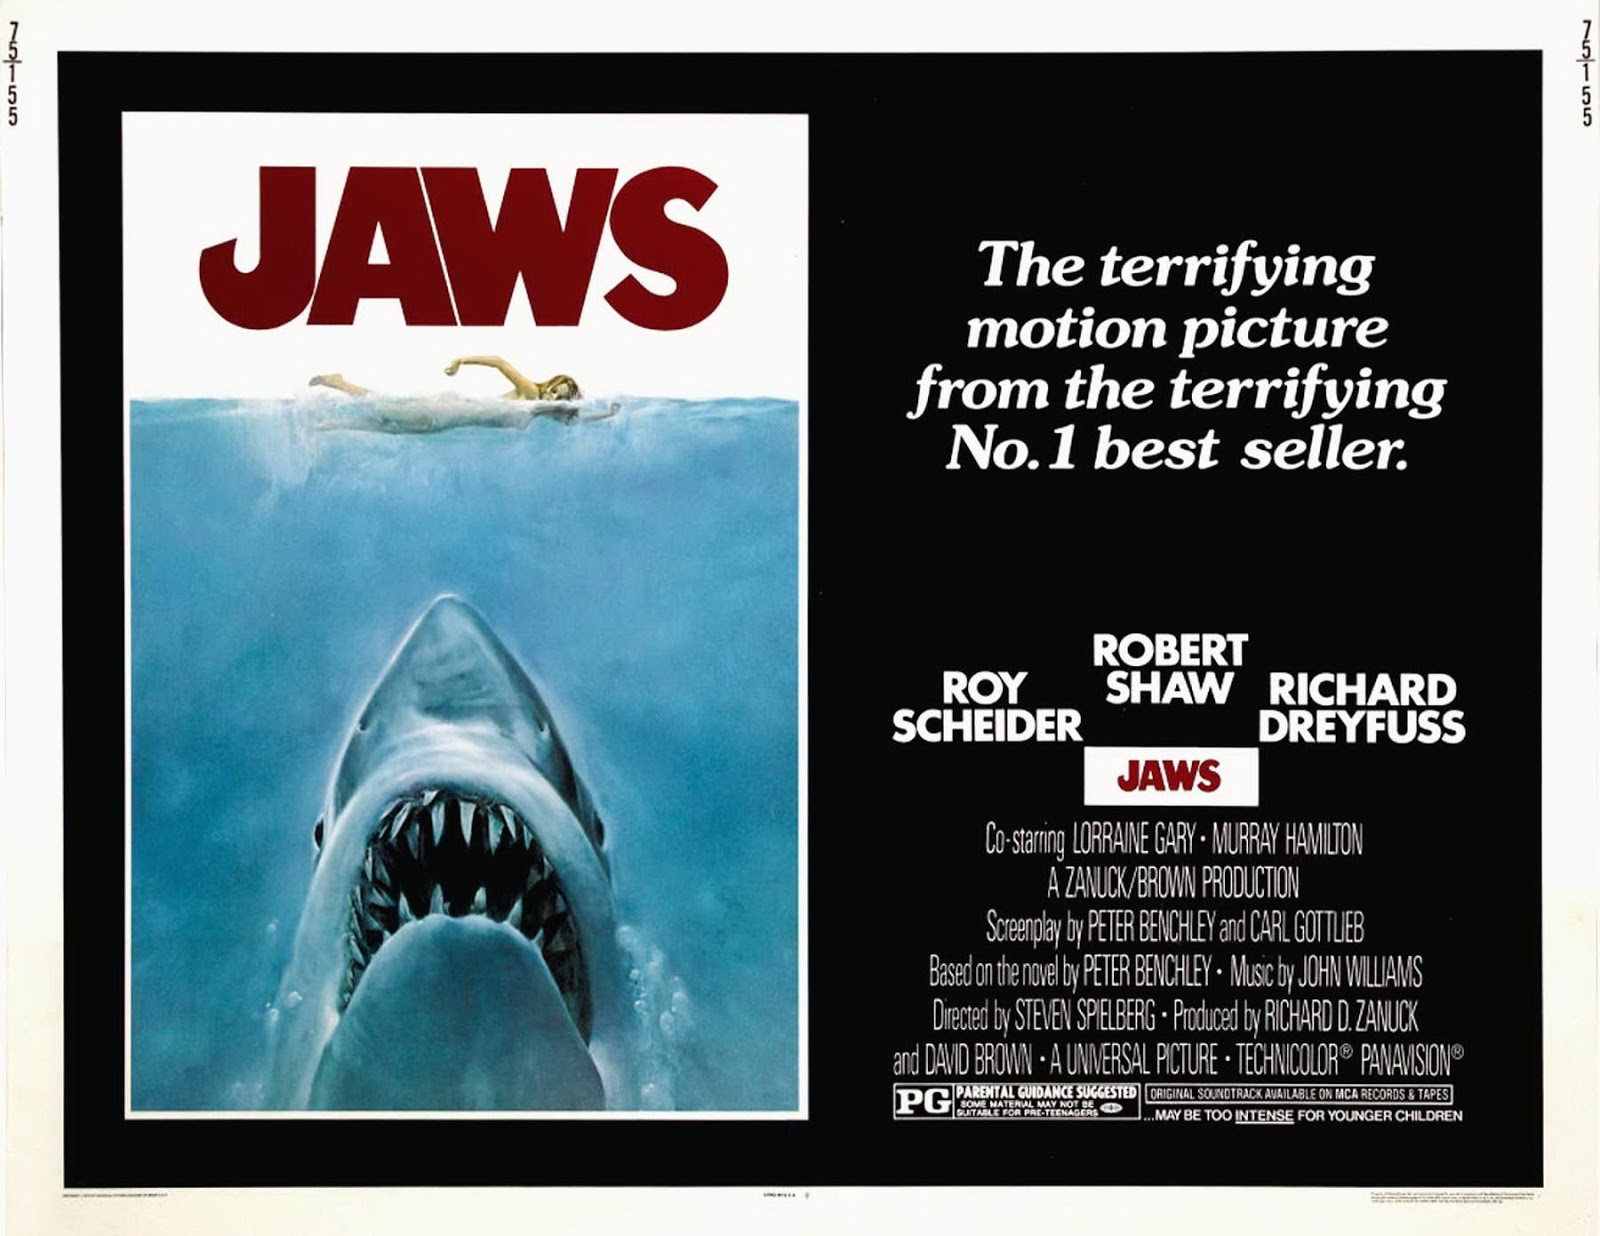 Jaws movie poster censored